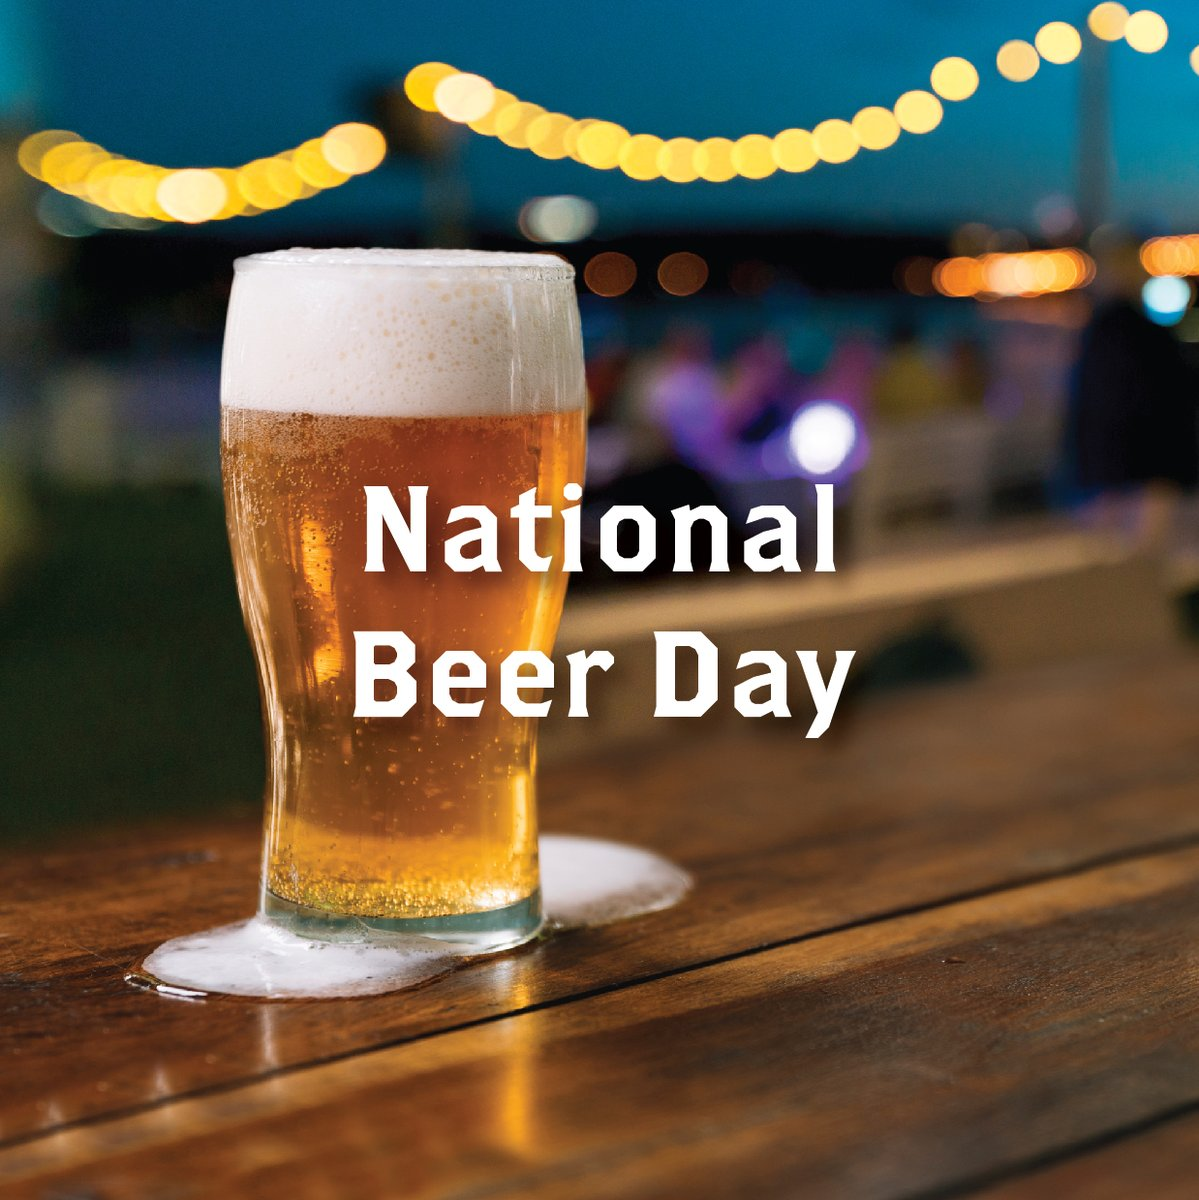 Proximity Malt On Twitter Happy National Beer Day Cheers To The Anniversary Of The End Of Prohibition In The U S Let S Celebrate To Today 87 Years Ago And Be Thankful We Live